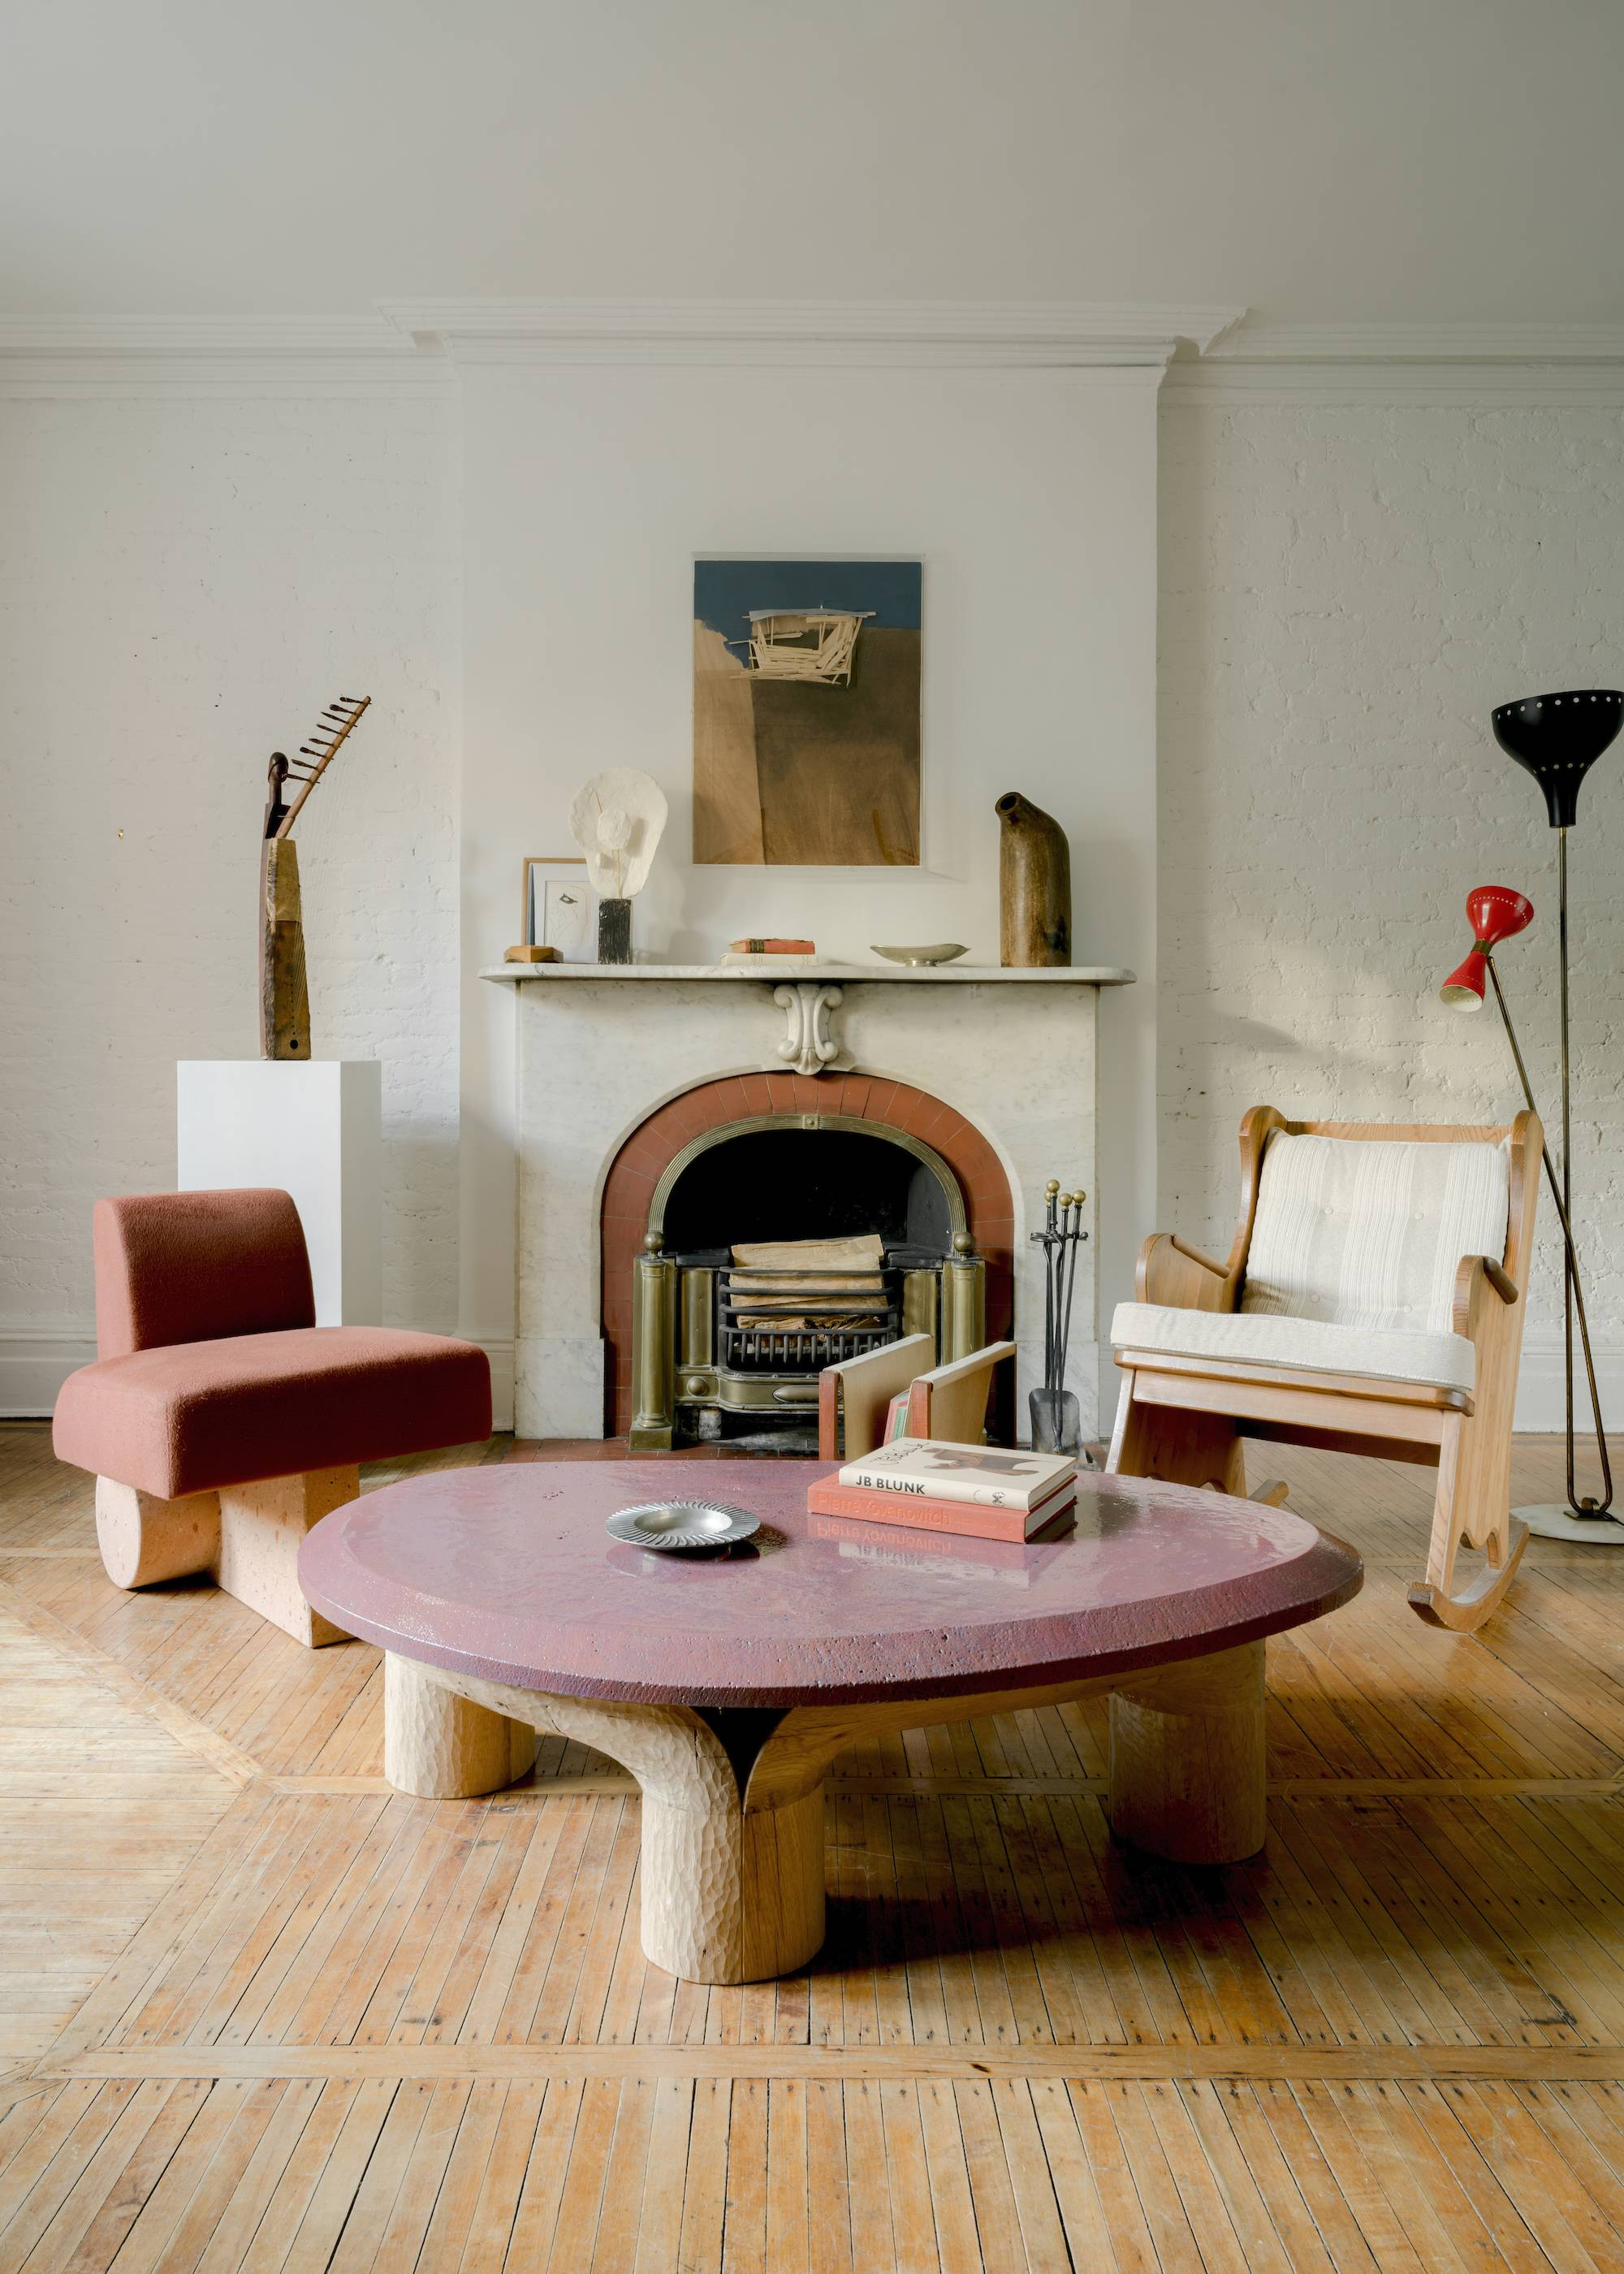 Ian Felton's glazed lava stone Sacha Coffee Table, perched on a hand-carved wooden base, is flanked by his glazed lava stone Kosa Side Chair and a 30s Lovö rocking chair by Swedish designer Axel Einar Hjorth. The artwork above the fireplace is by Japanese artist Tadashi Kawamata and the plaster lamp on the mantle is by Minjae Kim, a Korean artist working in NYC.